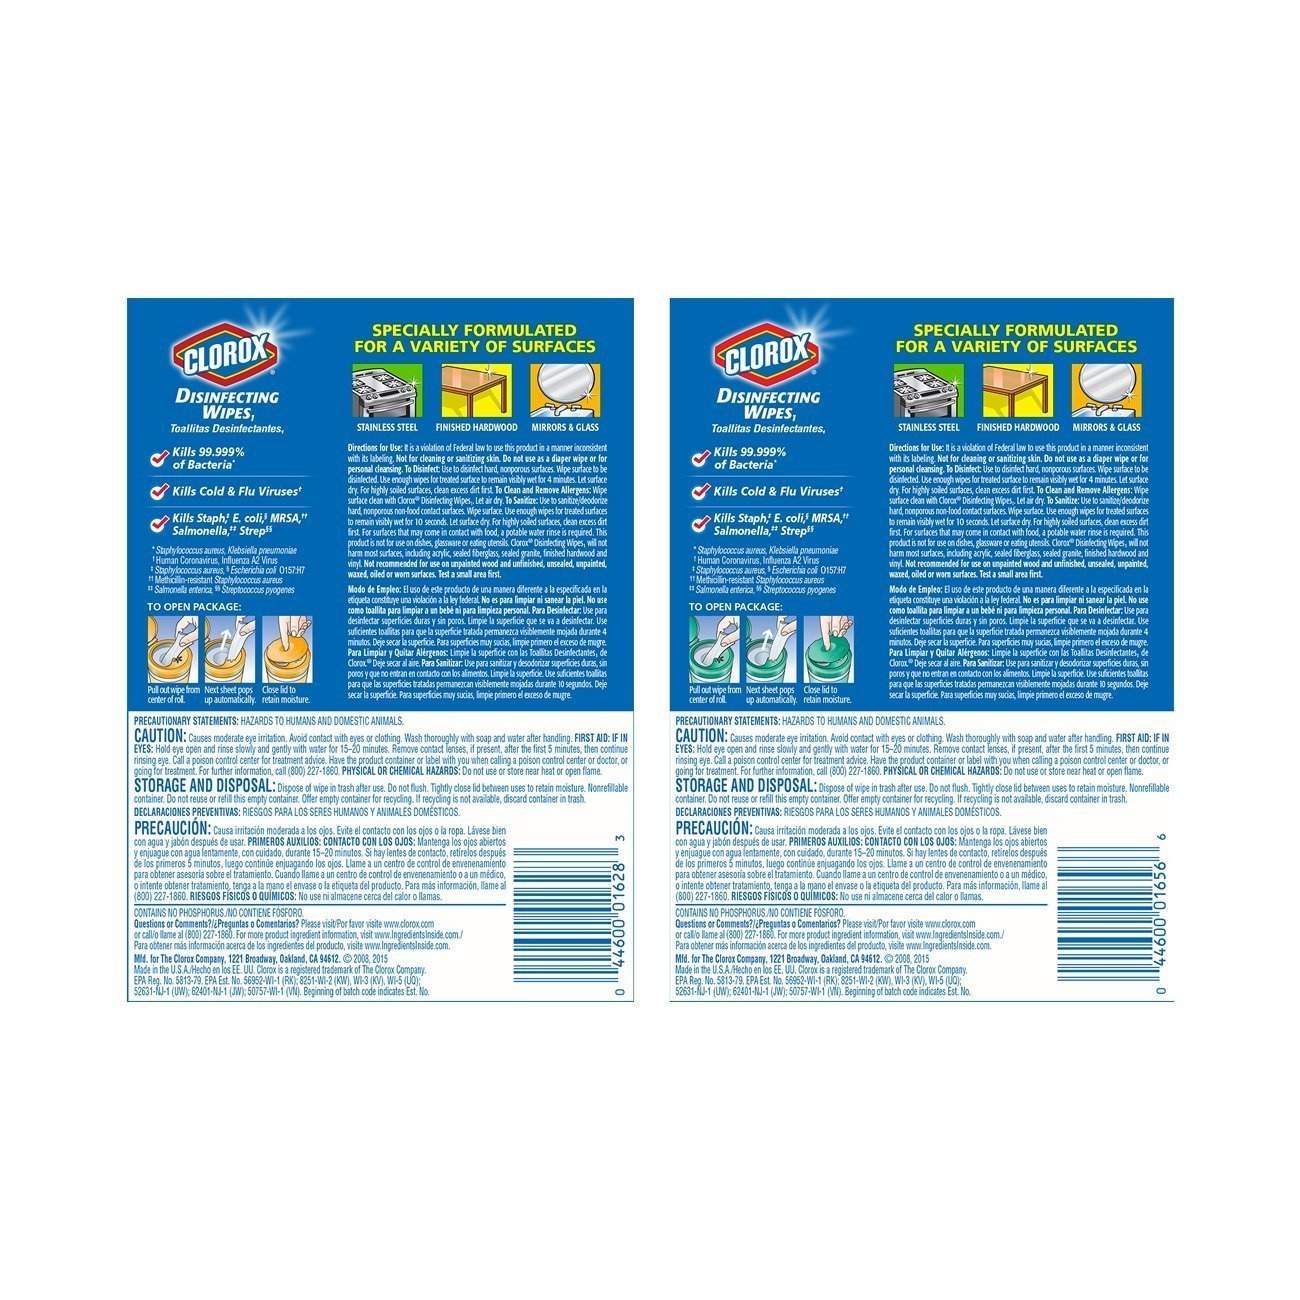 Amazon.com Clorox Disinfecting Wipes Value Pack Fresh Scent and Citrus Blend 450 Count Home u0026 Kitchen  sc 1 st  Amazon.com & Amazon.com: Clorox Disinfecting Wipes Value Pack Fresh Scent and ...